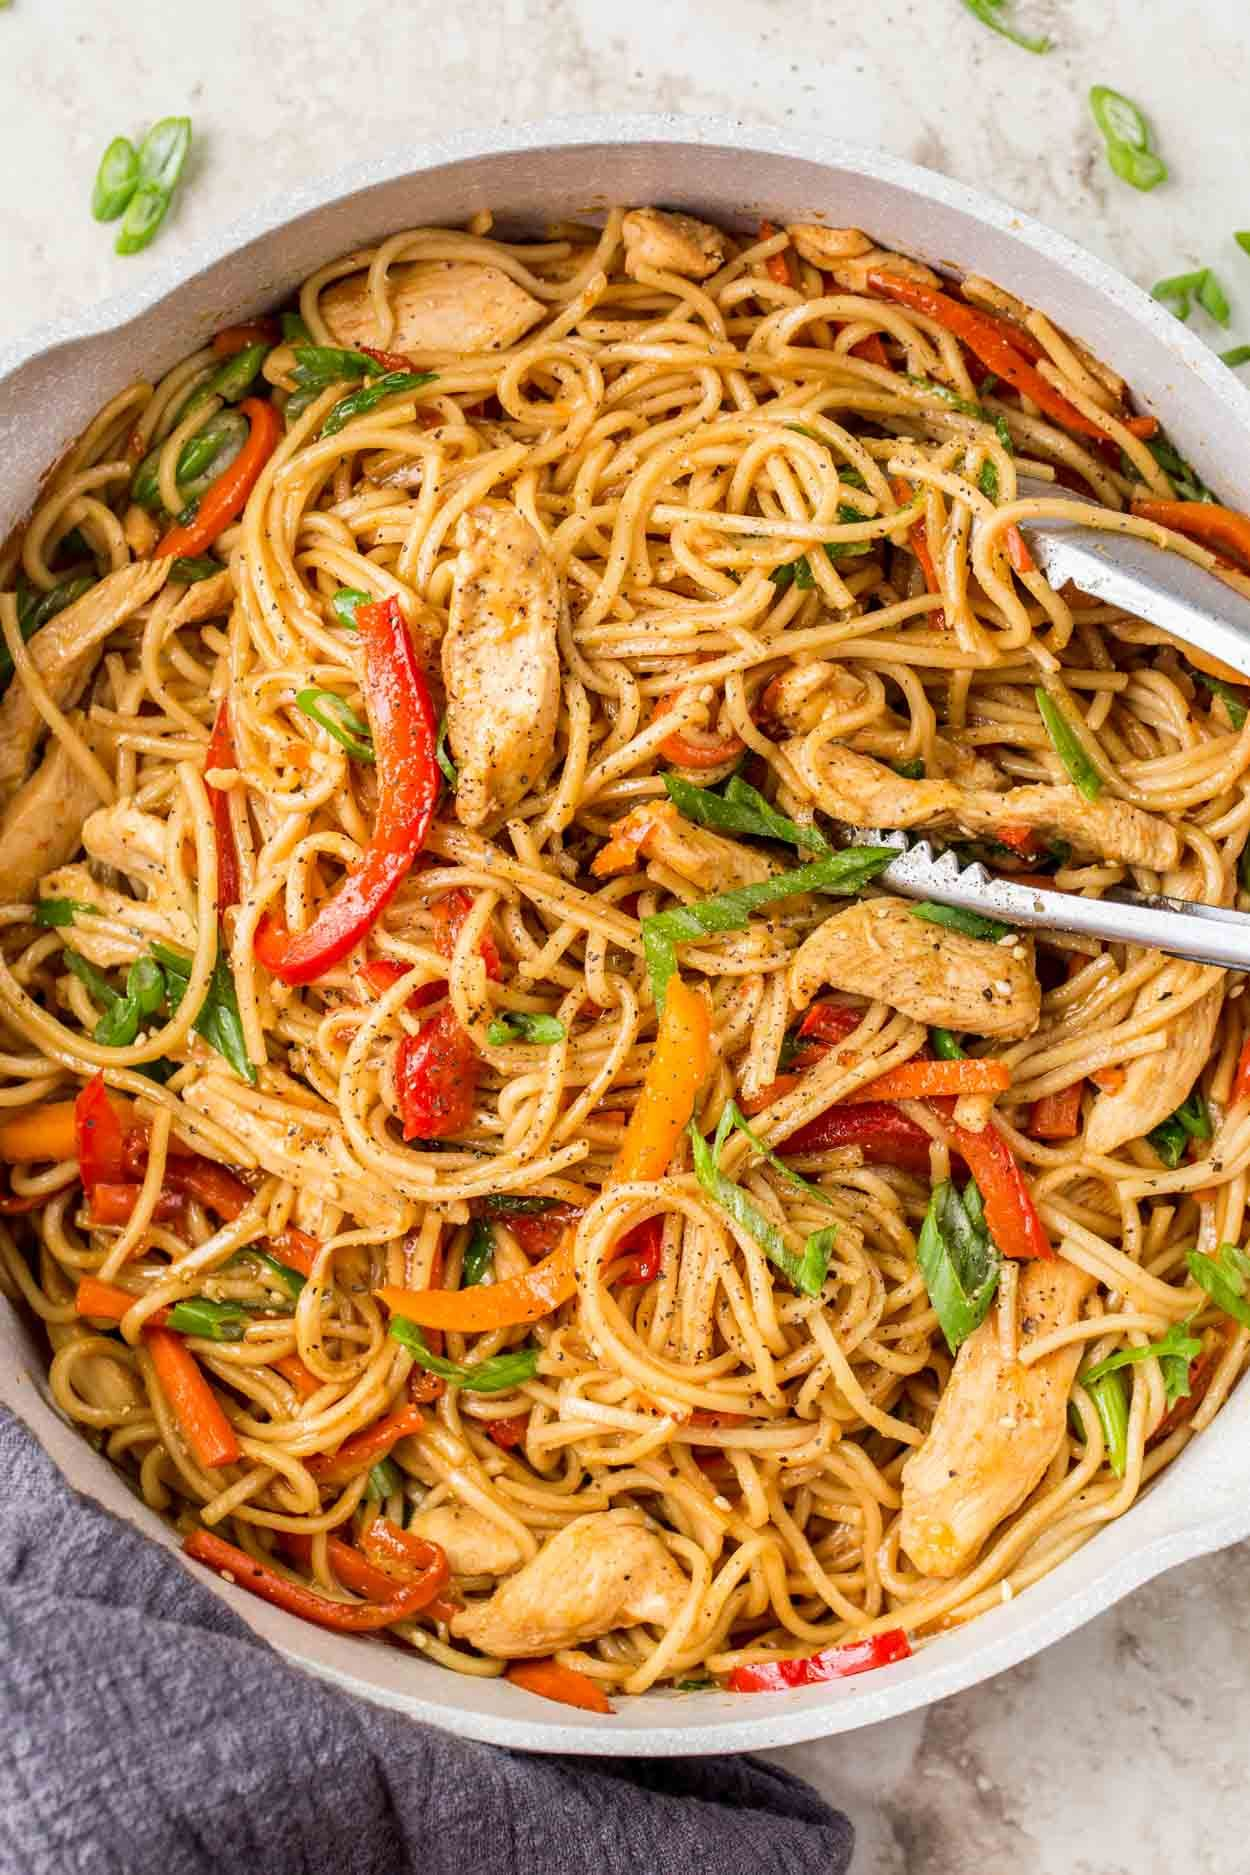 Quick and EASY homemade Chicken Lo Mein Recipe! Soft egg noodles loaded with chicken and vegetables in flavor-packed sauce, ready in just 30 minutes!